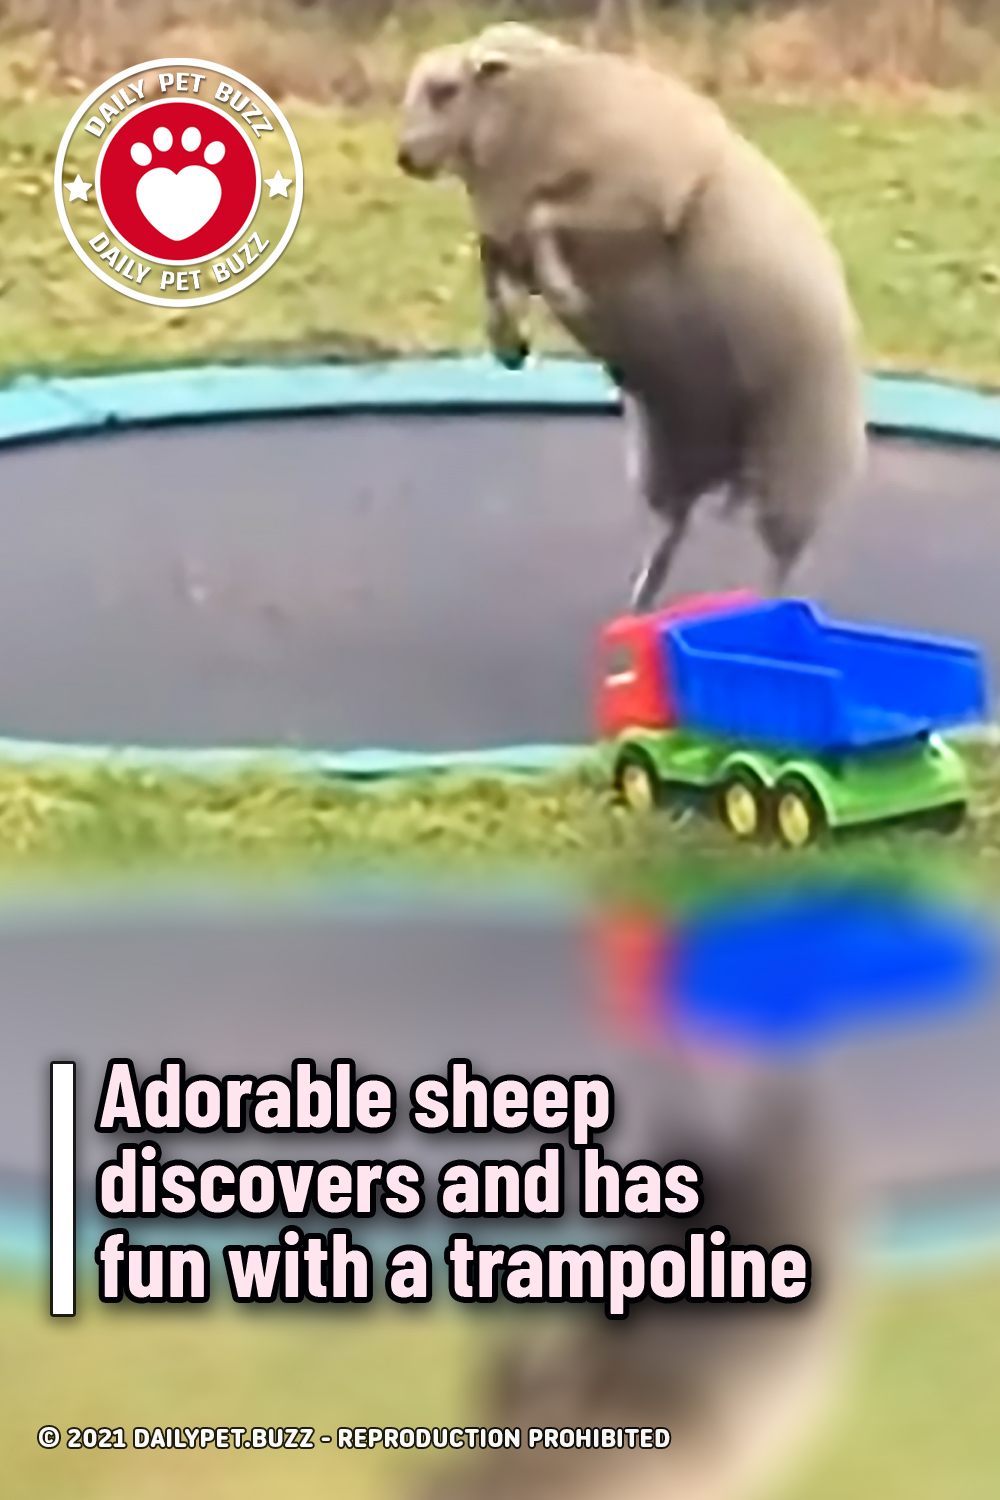 Adorable sheep discovers and has fun with a trampoline